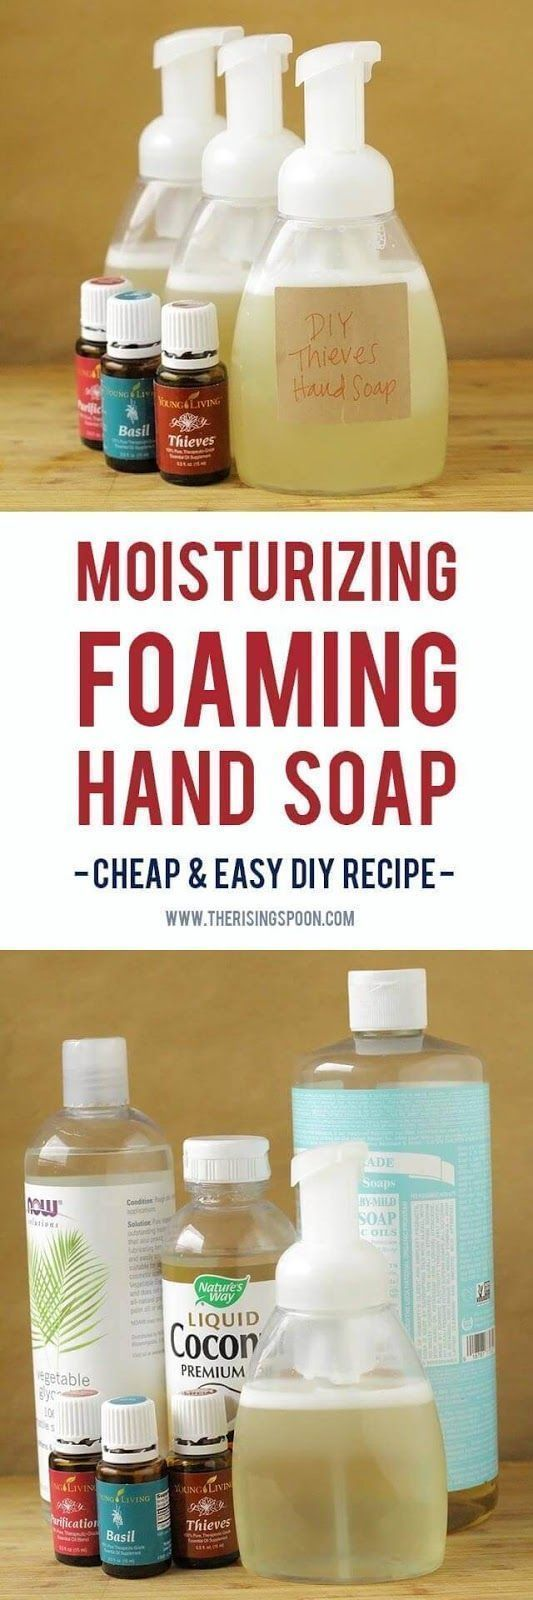 Want to make your own foaming hand soap at home? It's not hard! Try my super easy DIY recipe using a few simple and non-toxic ingredients like liquid castile soap, water, moisturizing liquid carrier oils, and essential oils. This homemade version costs pennies to make a single batch and your hands will thank you! | personal care products | essential oil recipes | homemade gifts | holiday gift ideas | #PatchouliEssentialOilsrecipes